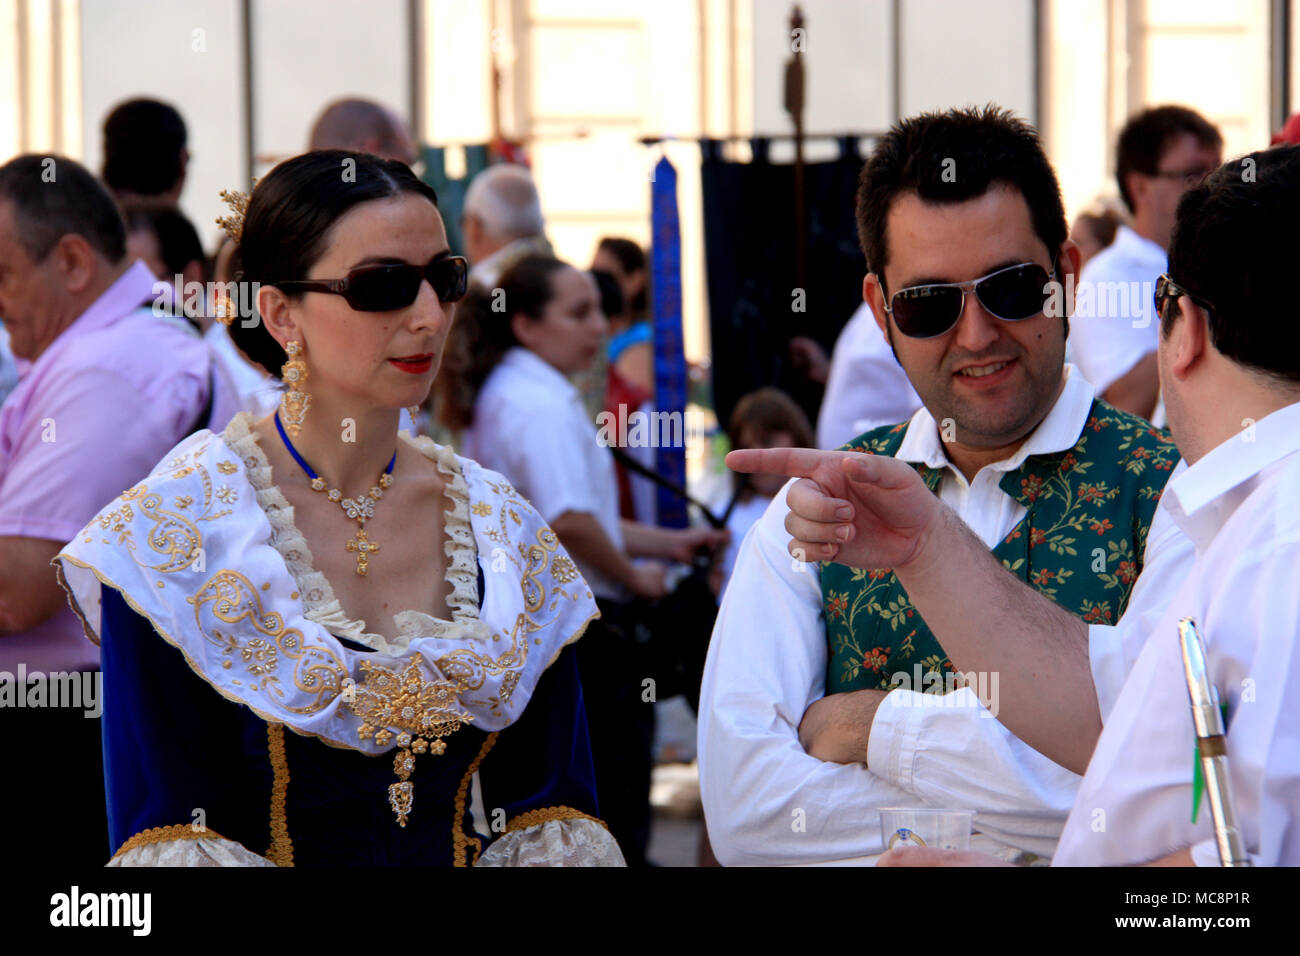 Traditionally dressed up people at the Hogueras de San Juan Festival in Alicante, Spain Stock Photo